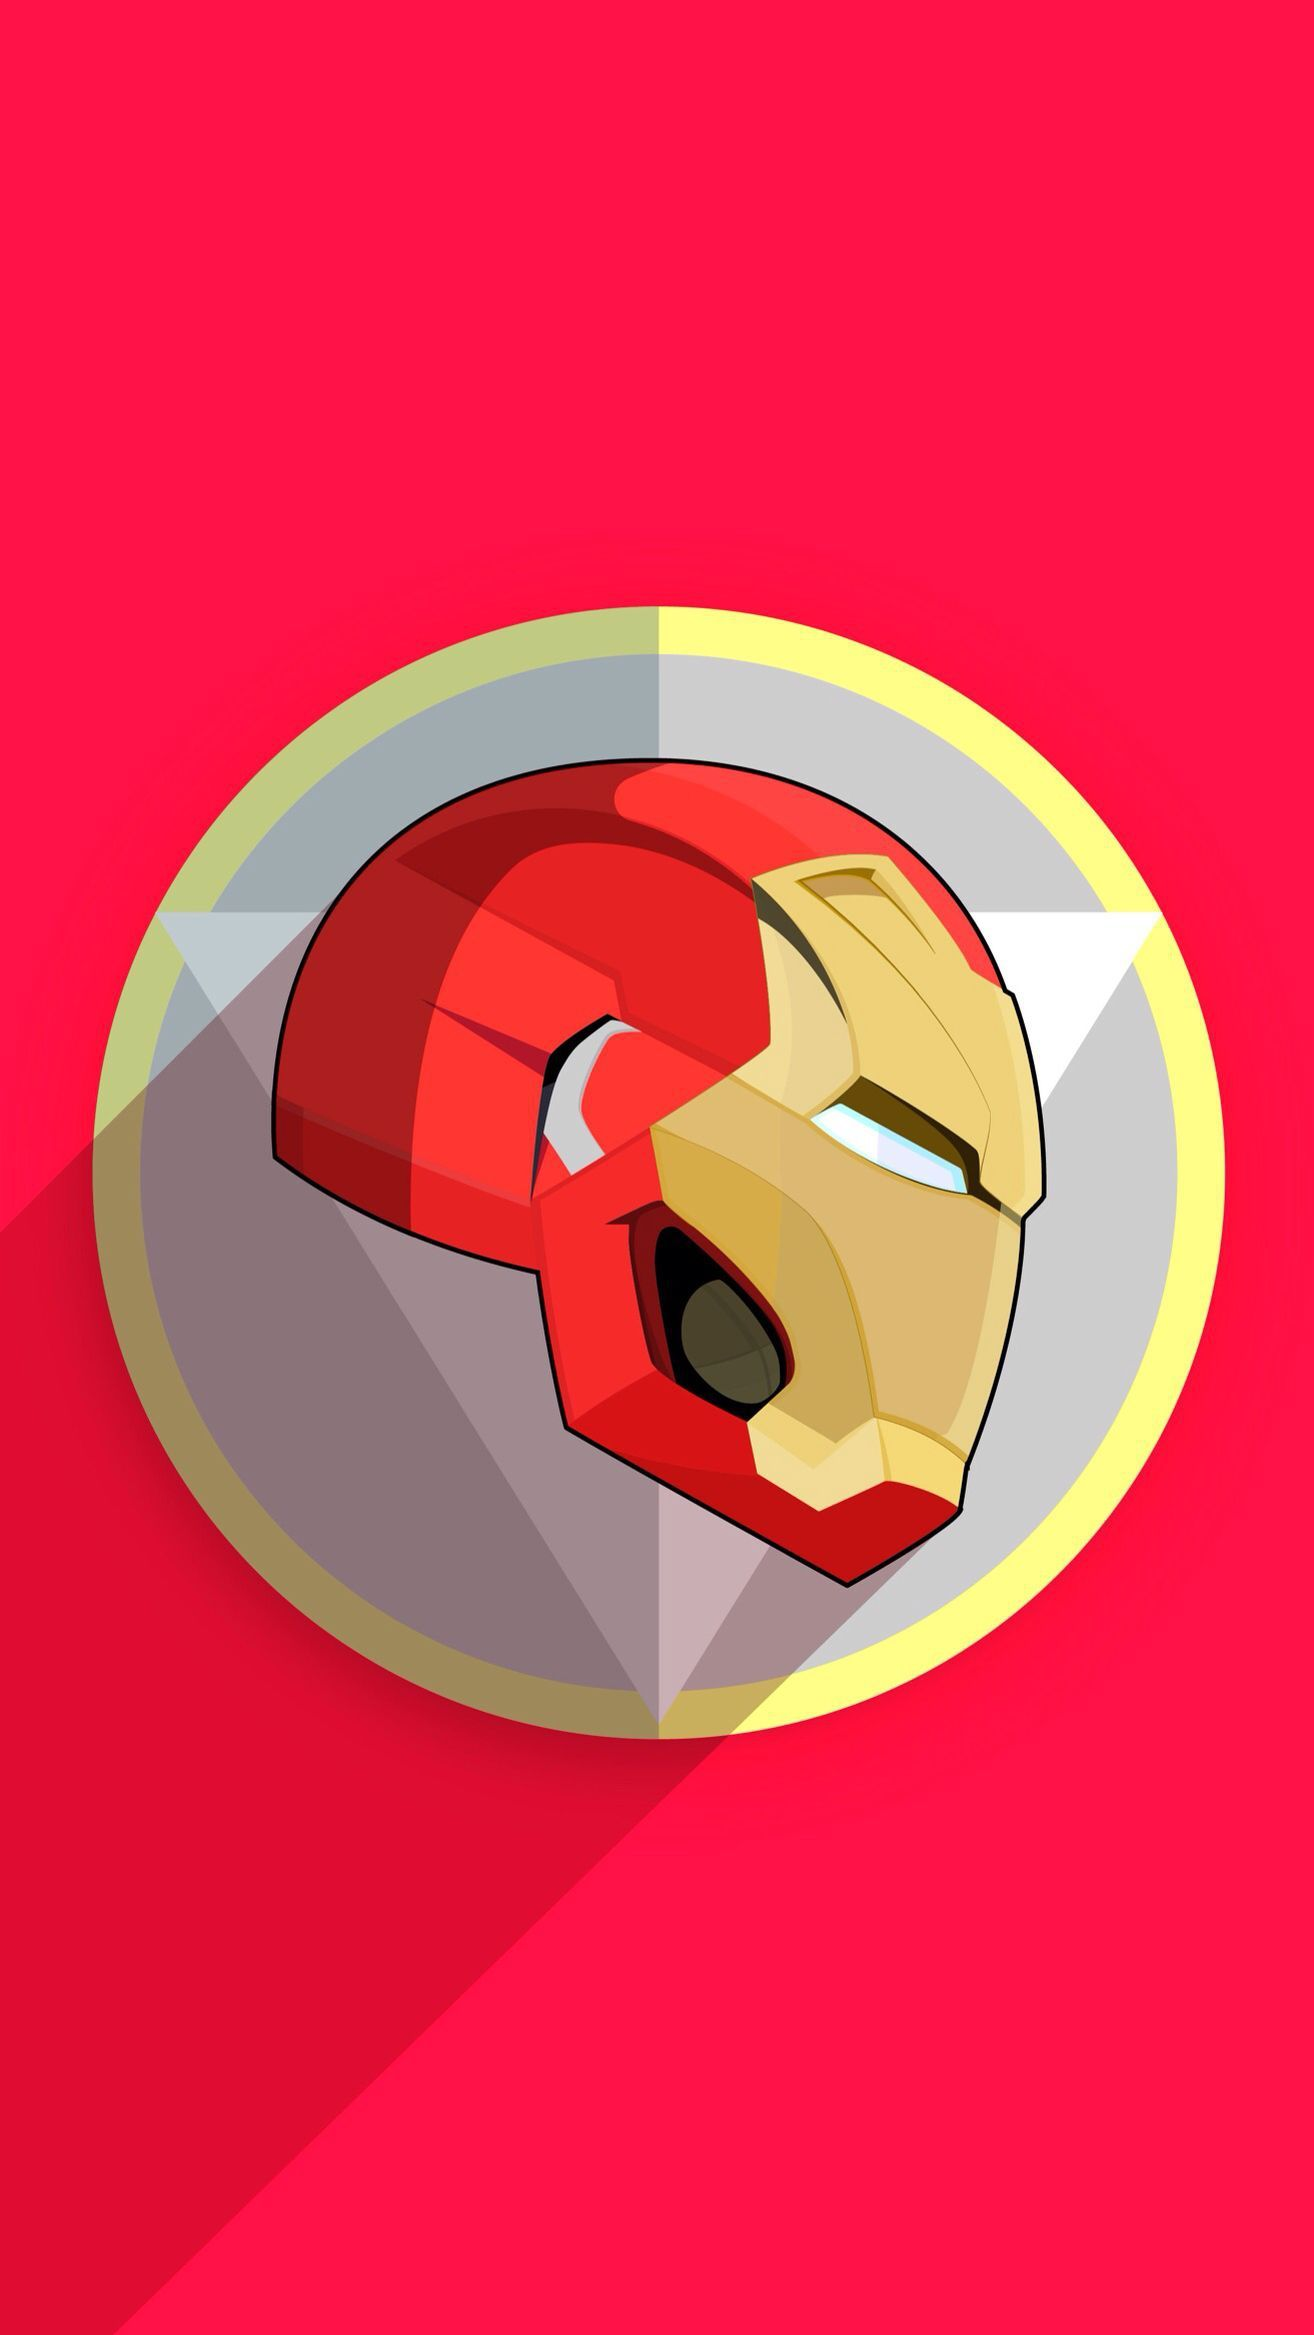 Iron Man Mark 50 Armour Minimal Iphone Wallpaper Iron Man